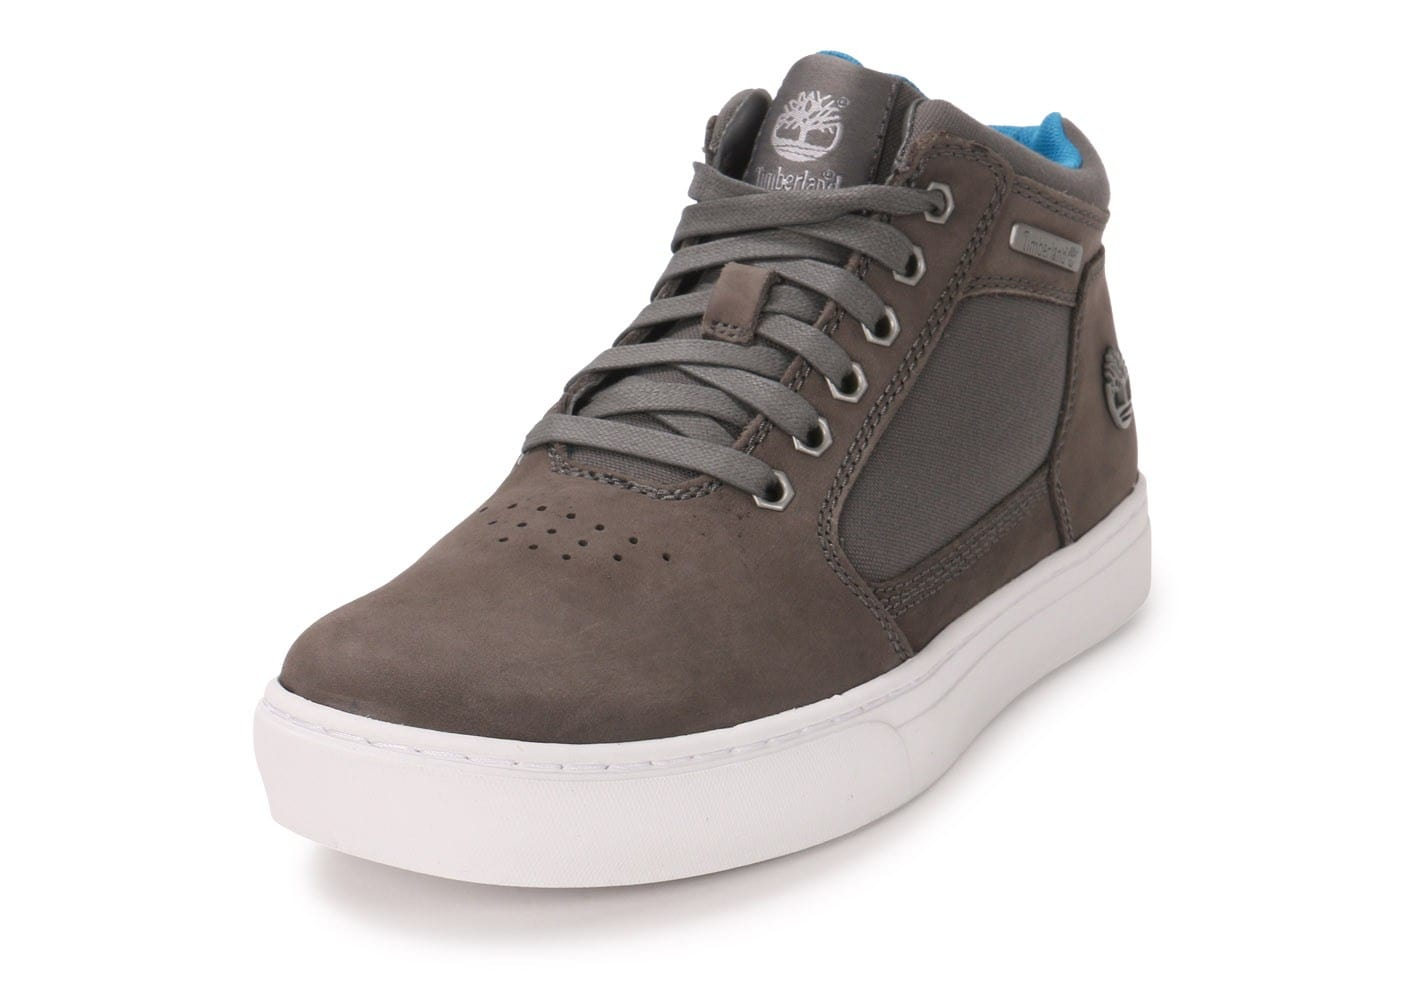 Timberland cupsole 2 0 grise chaussures baskets homme chausport - Timberland grise homme ...